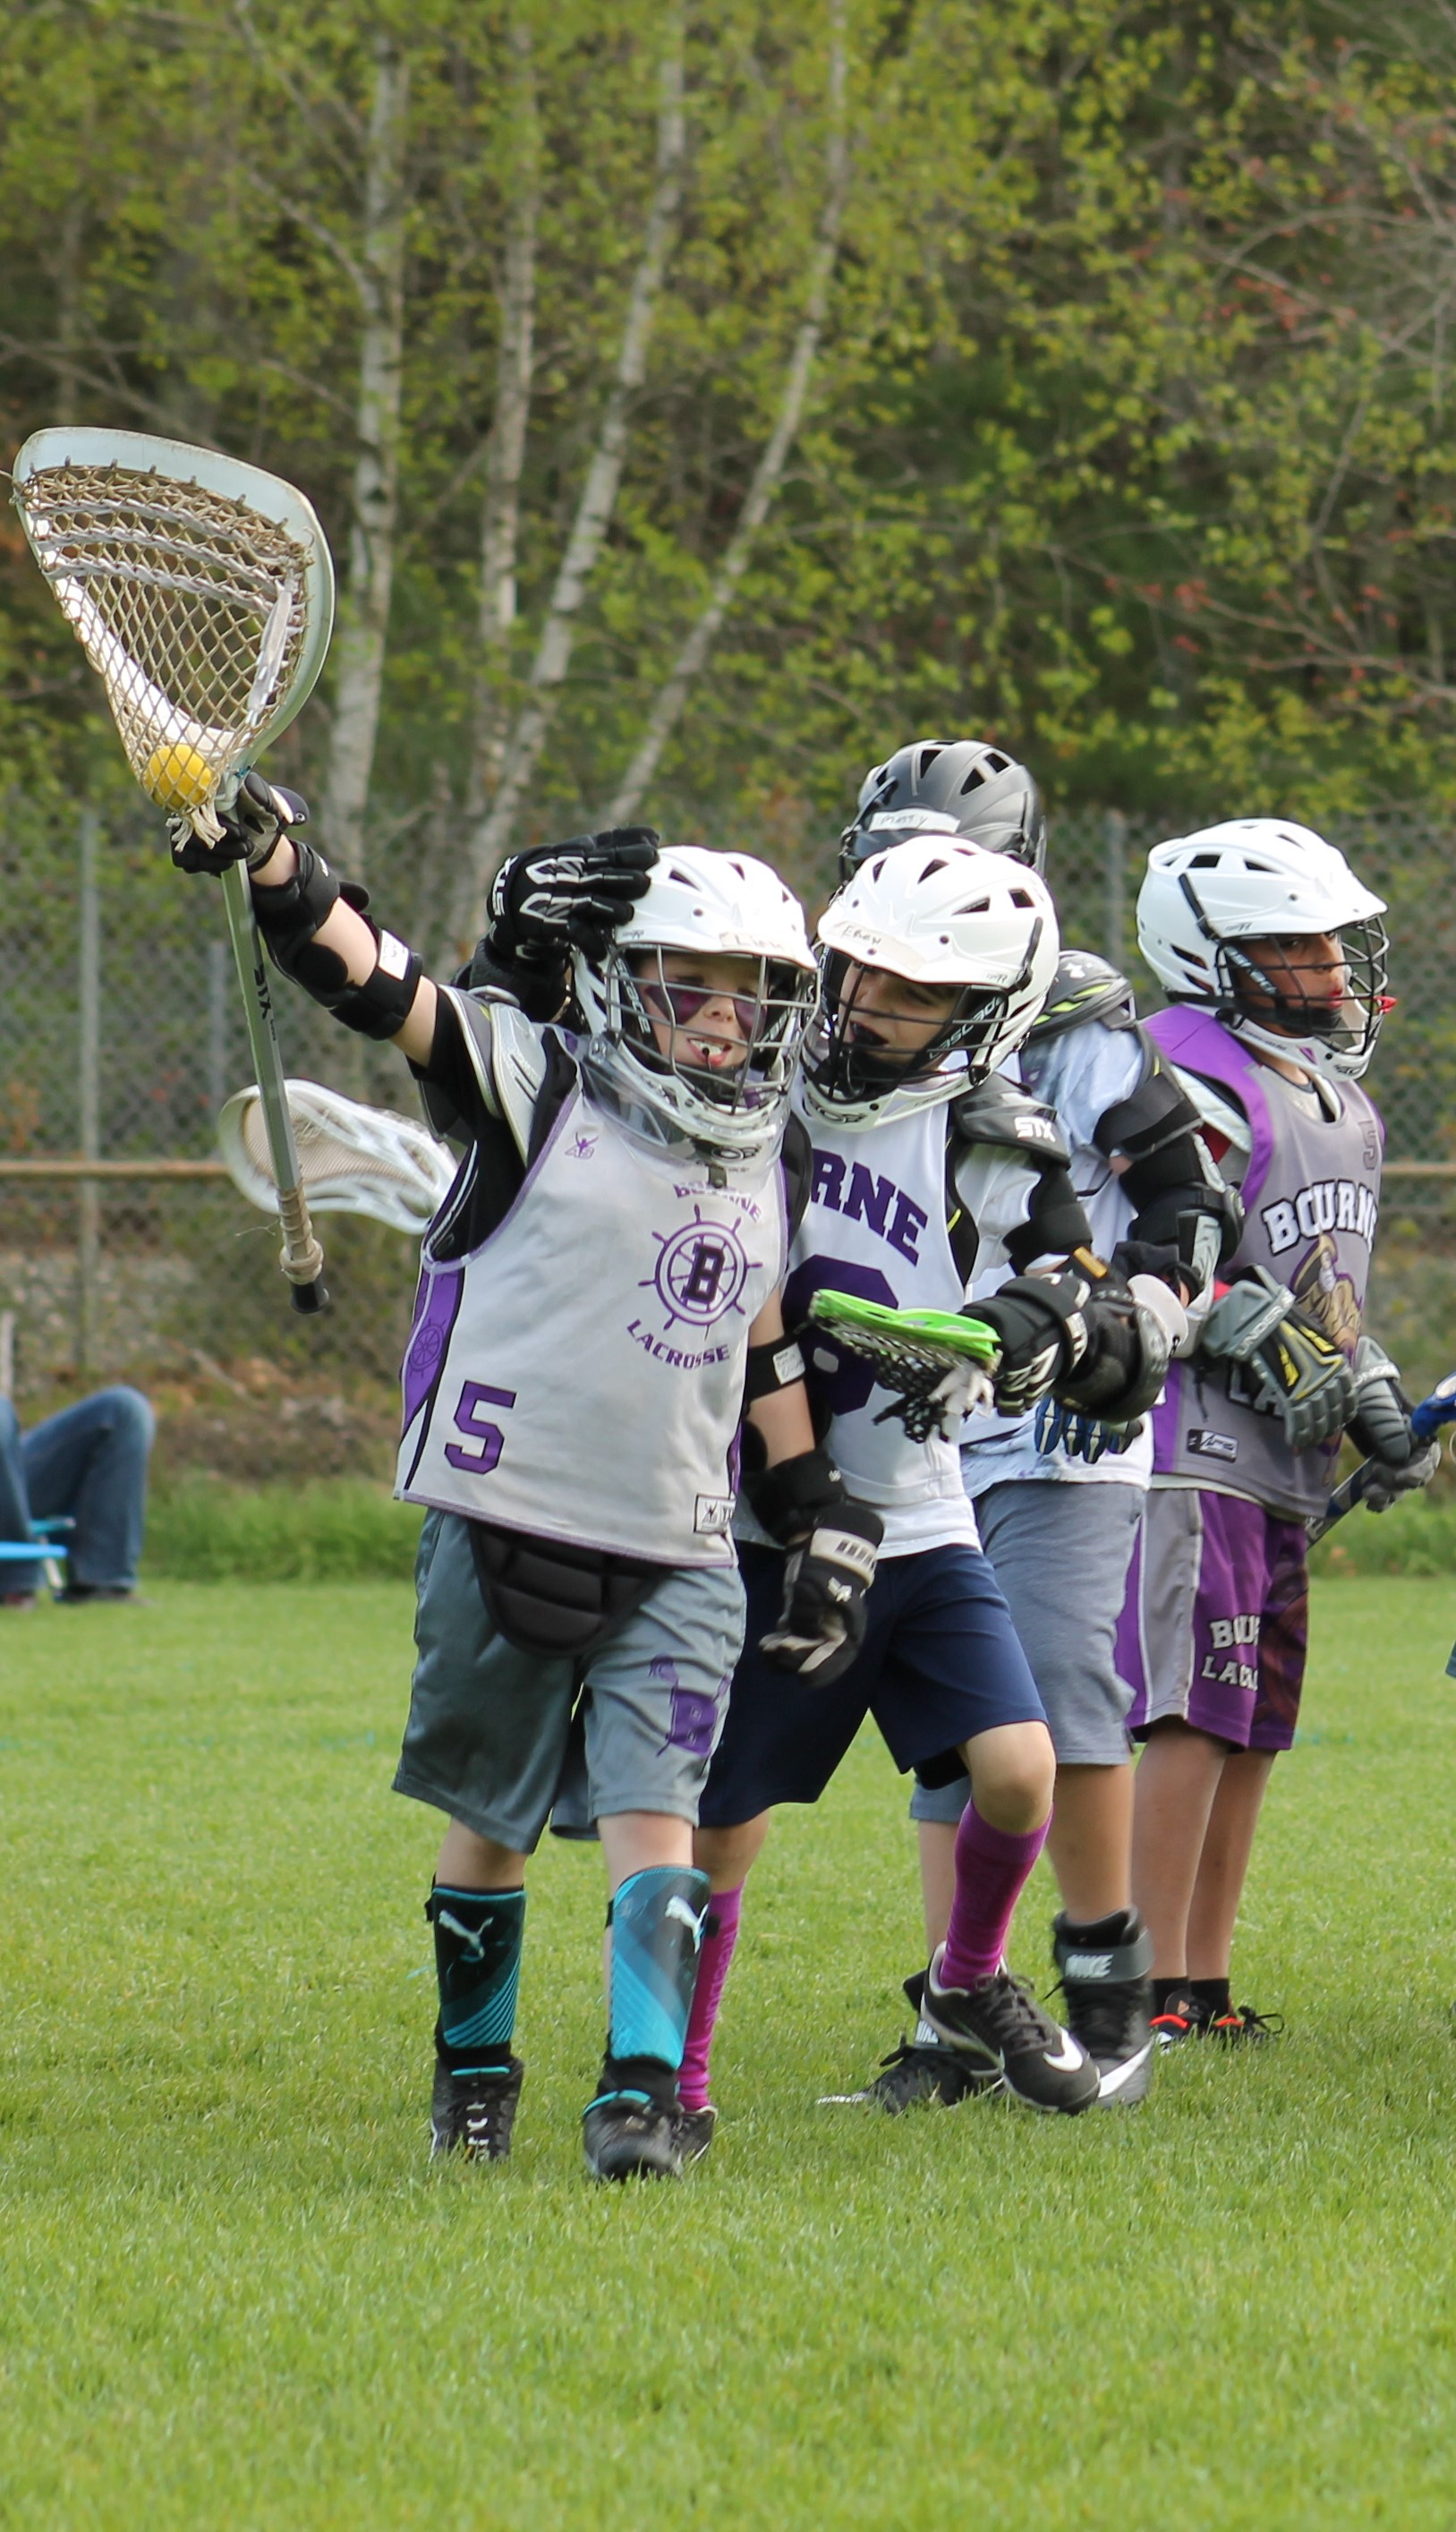 Bourne Youth Lacrosse, Lacrosse, Goal, Field